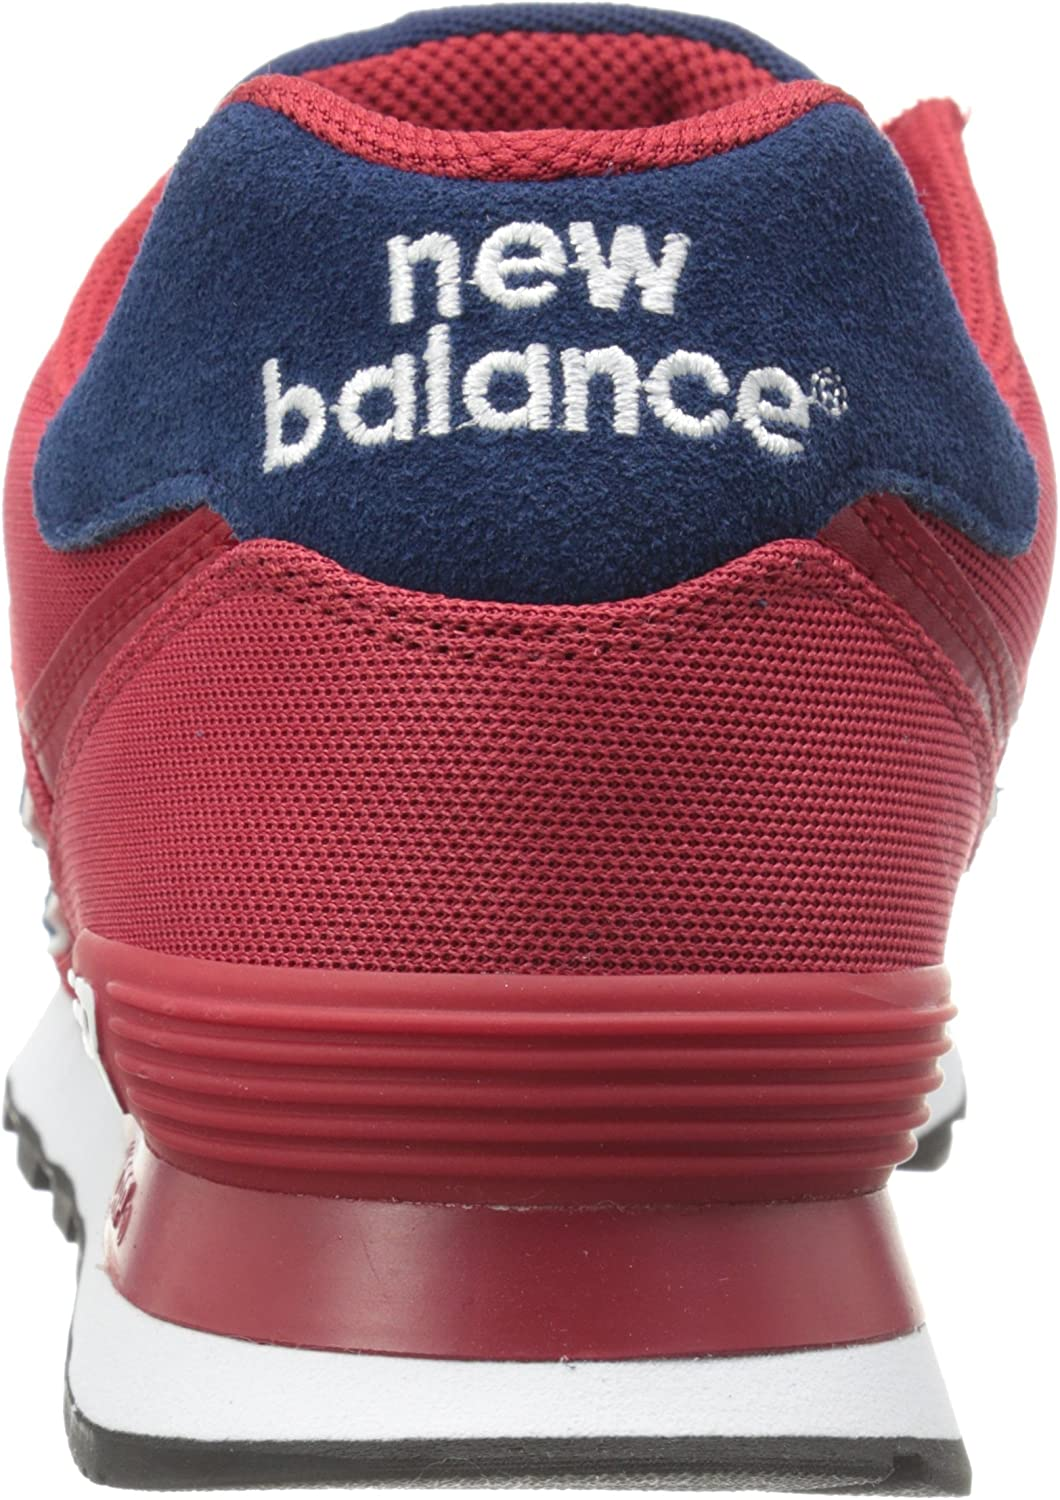 New Balance 574 Pique Polo Pack, Zapatillas para Hombre: New ...